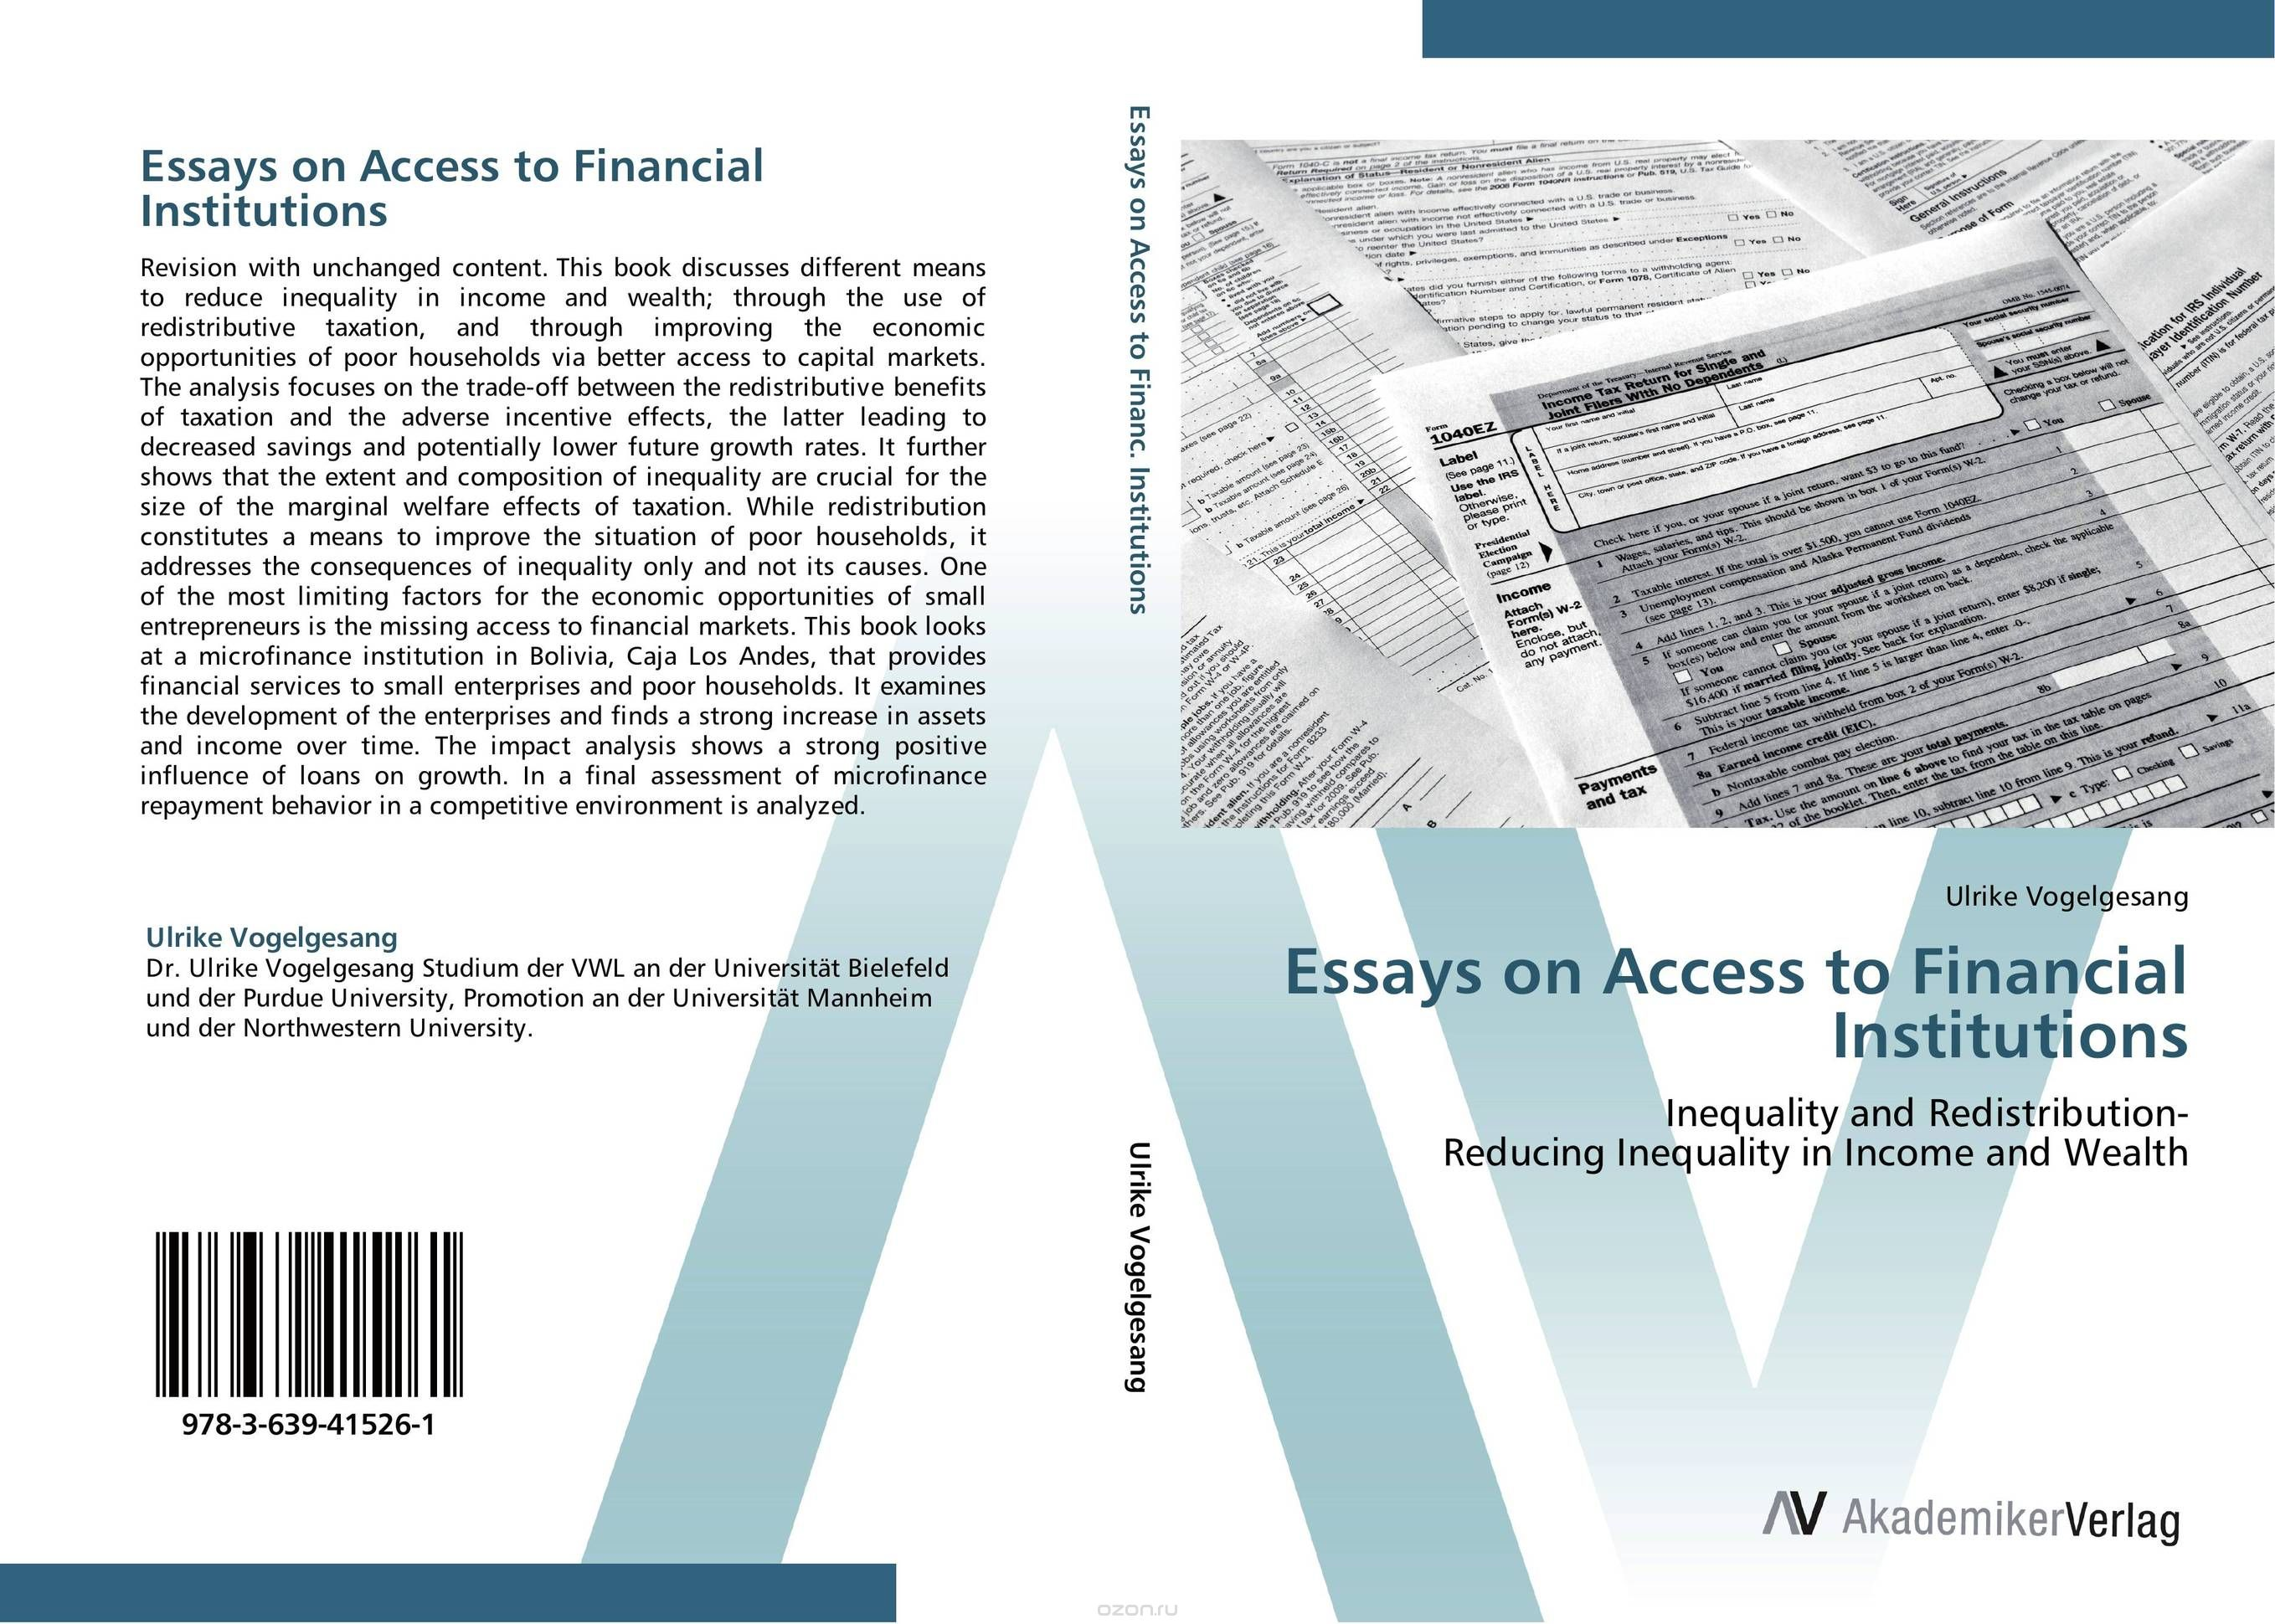 Essays on Access to Financial Institutions